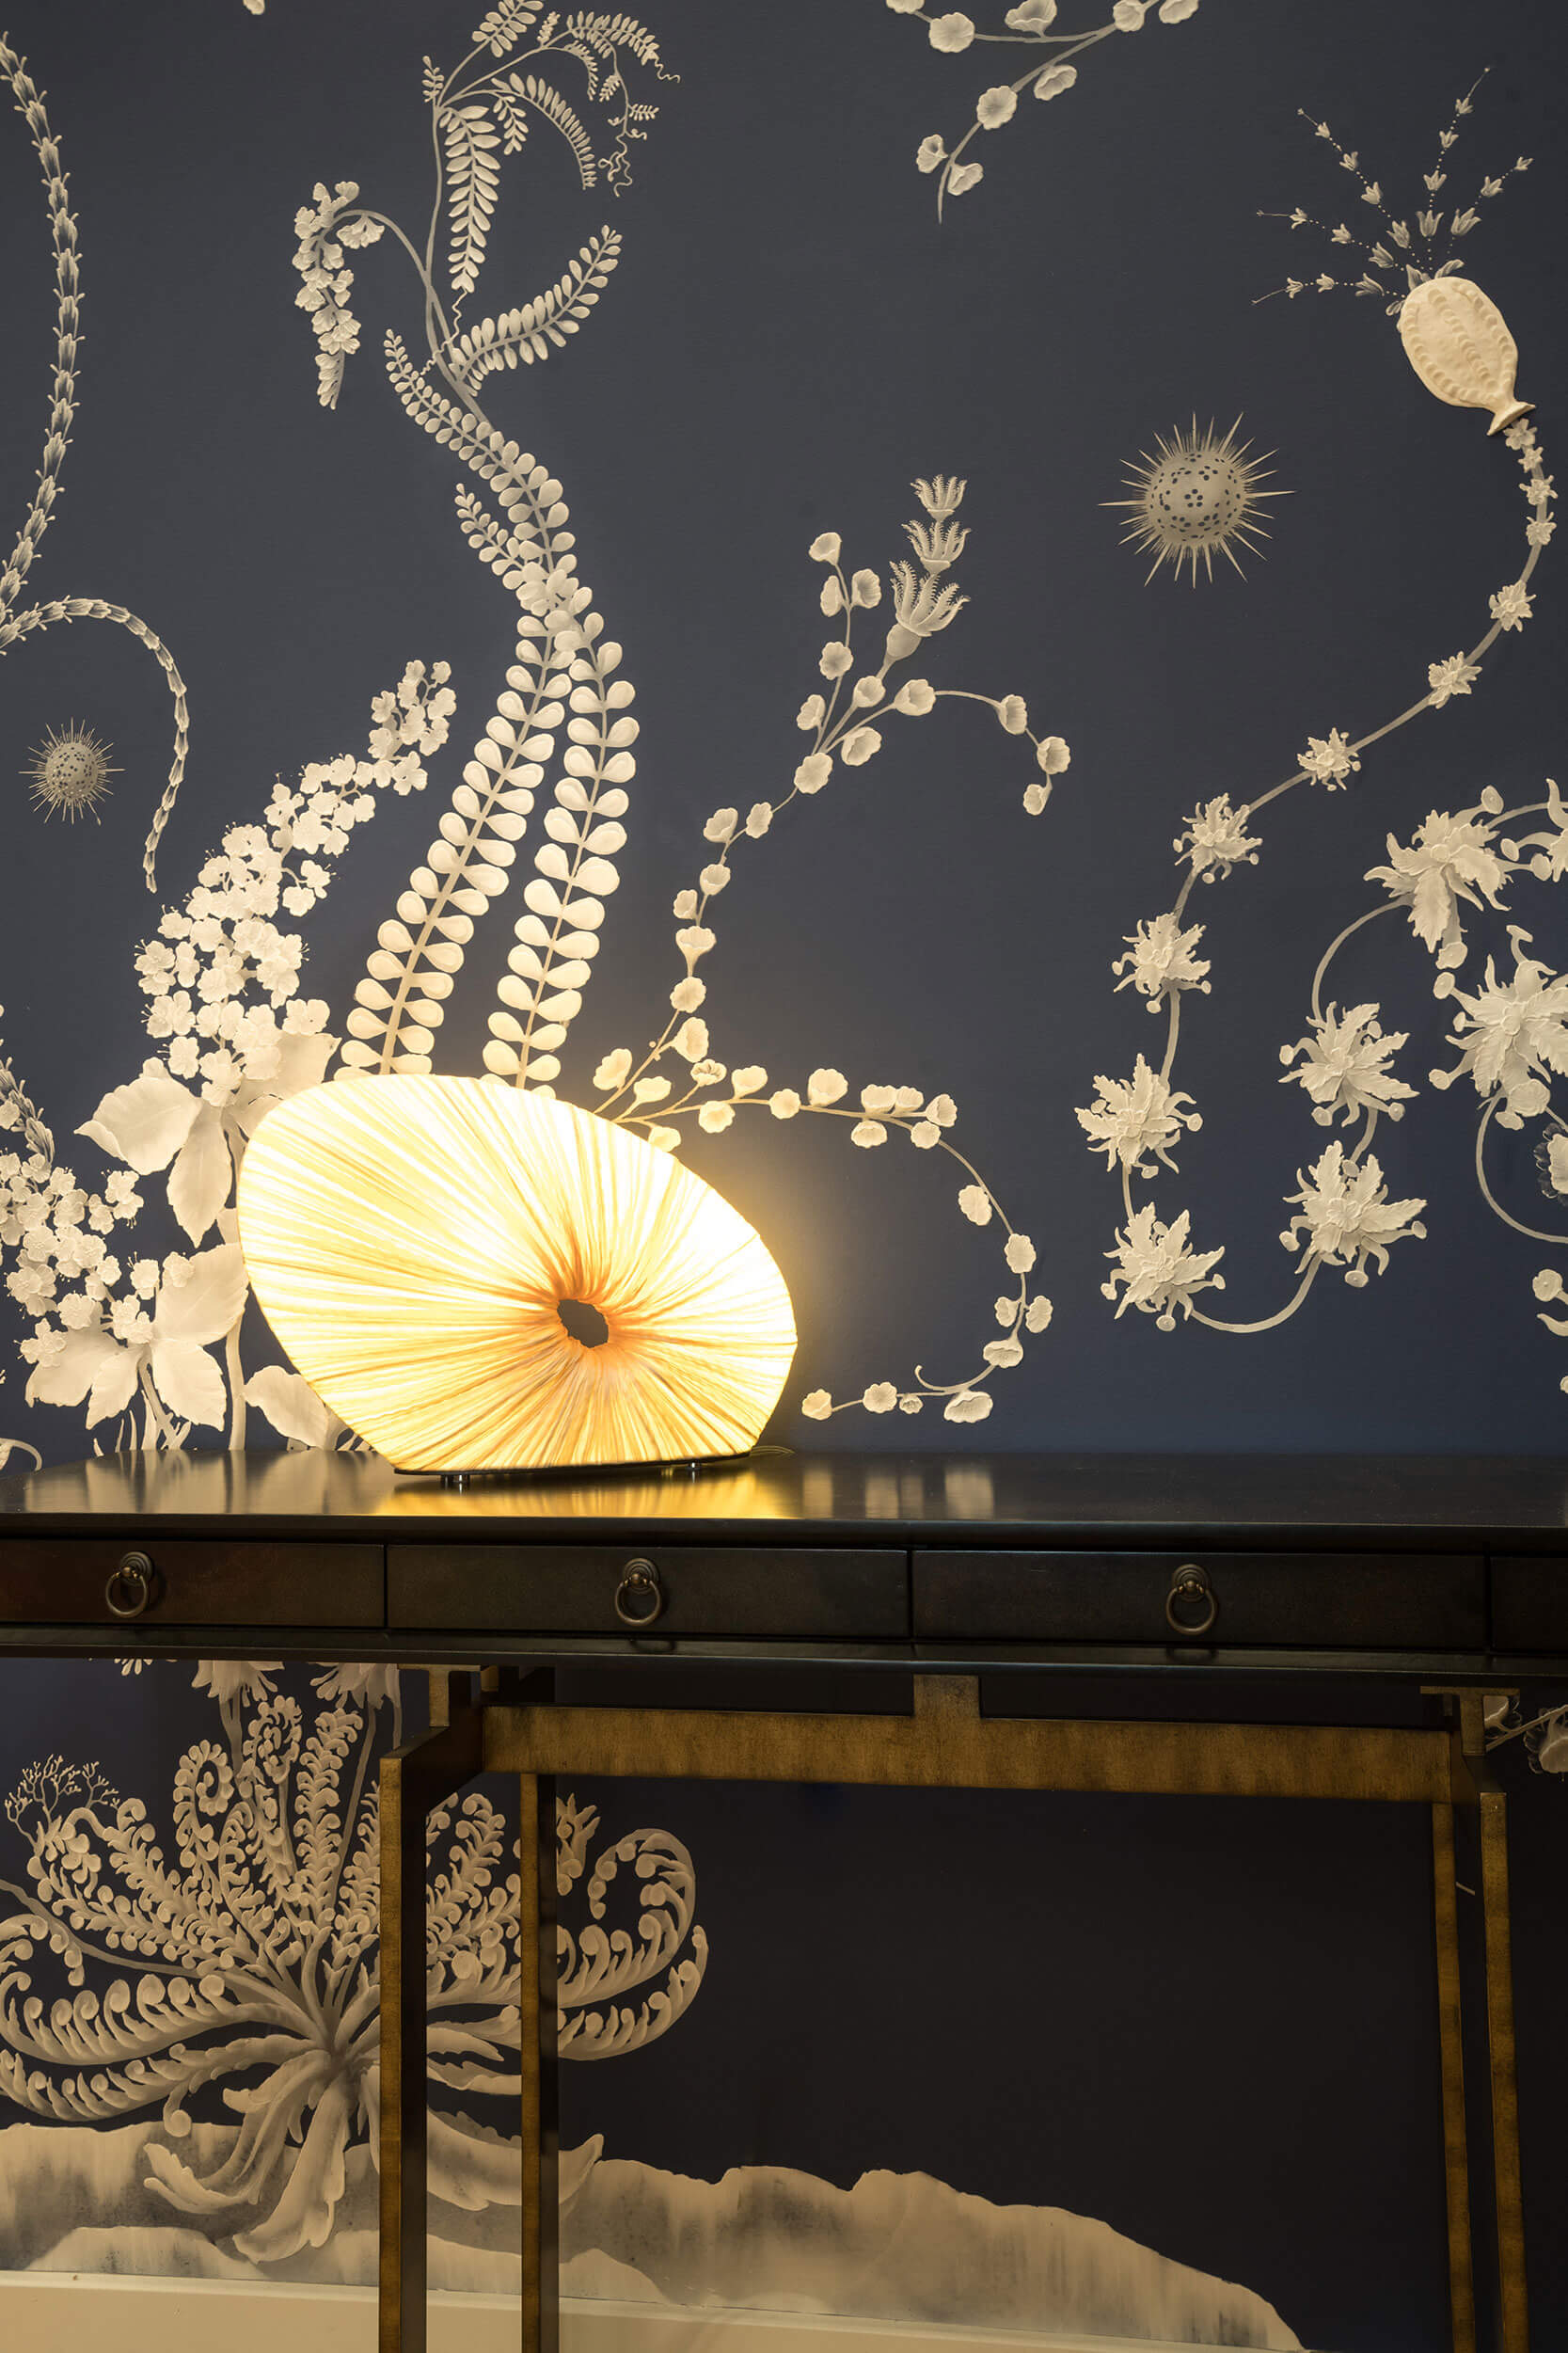 Doe Table Lamp in Cream silk on a dark wooden table against a dark blue wallpaper decorated with golden flower motifs